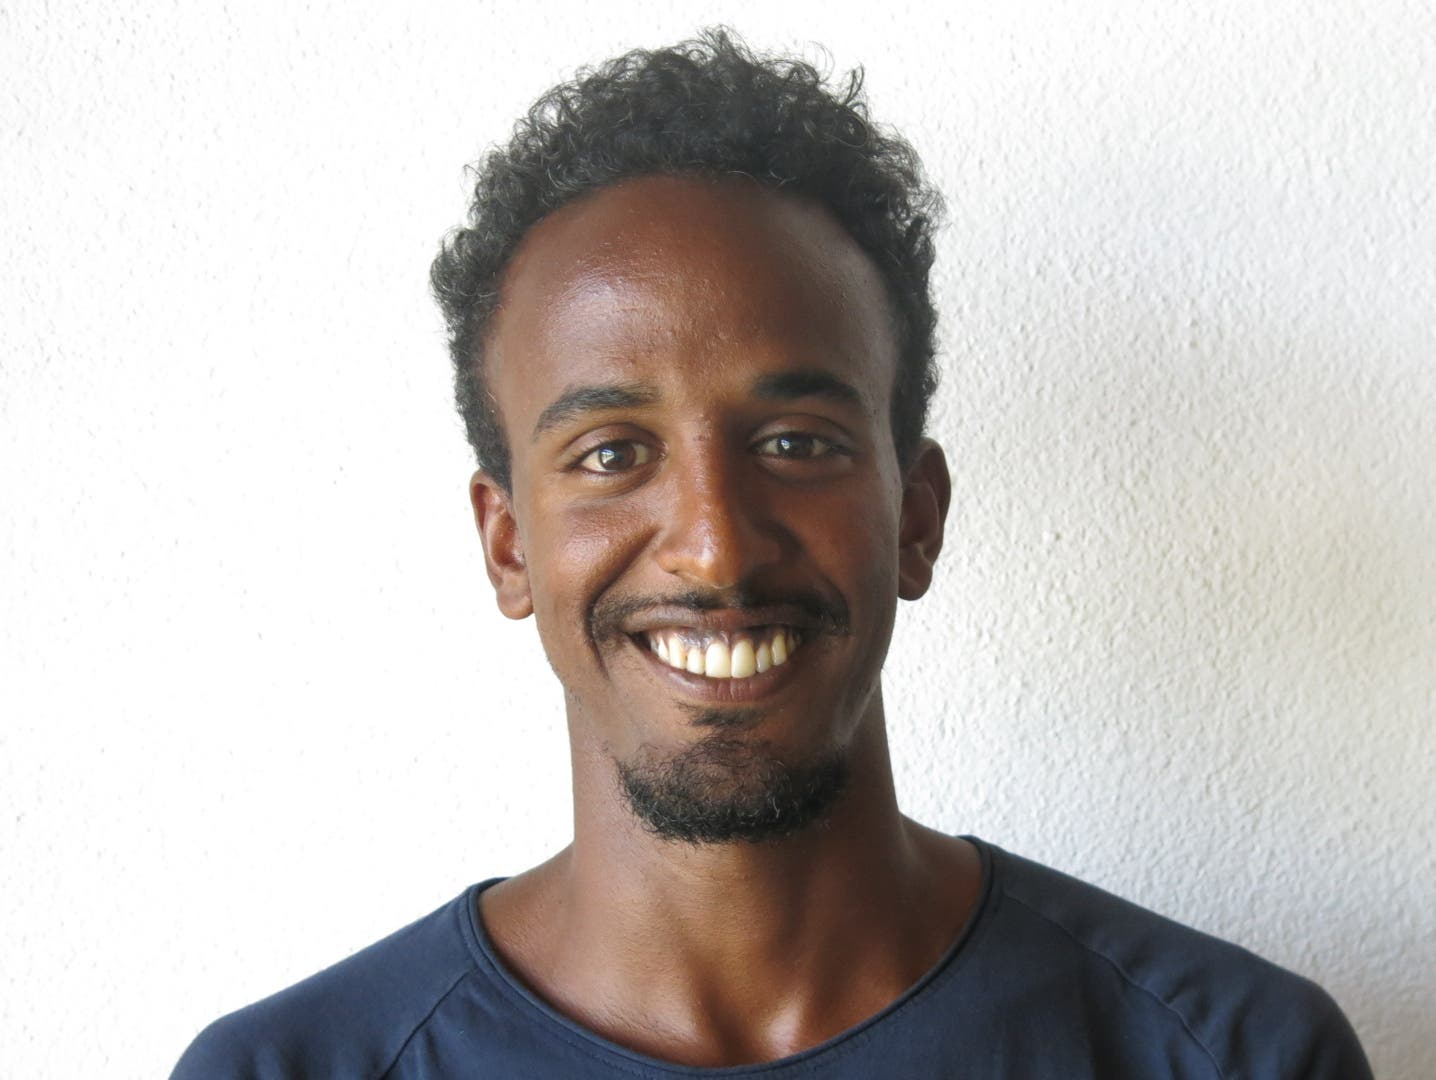 Yonas Kidane, SP-Second@s Plus und Migranten